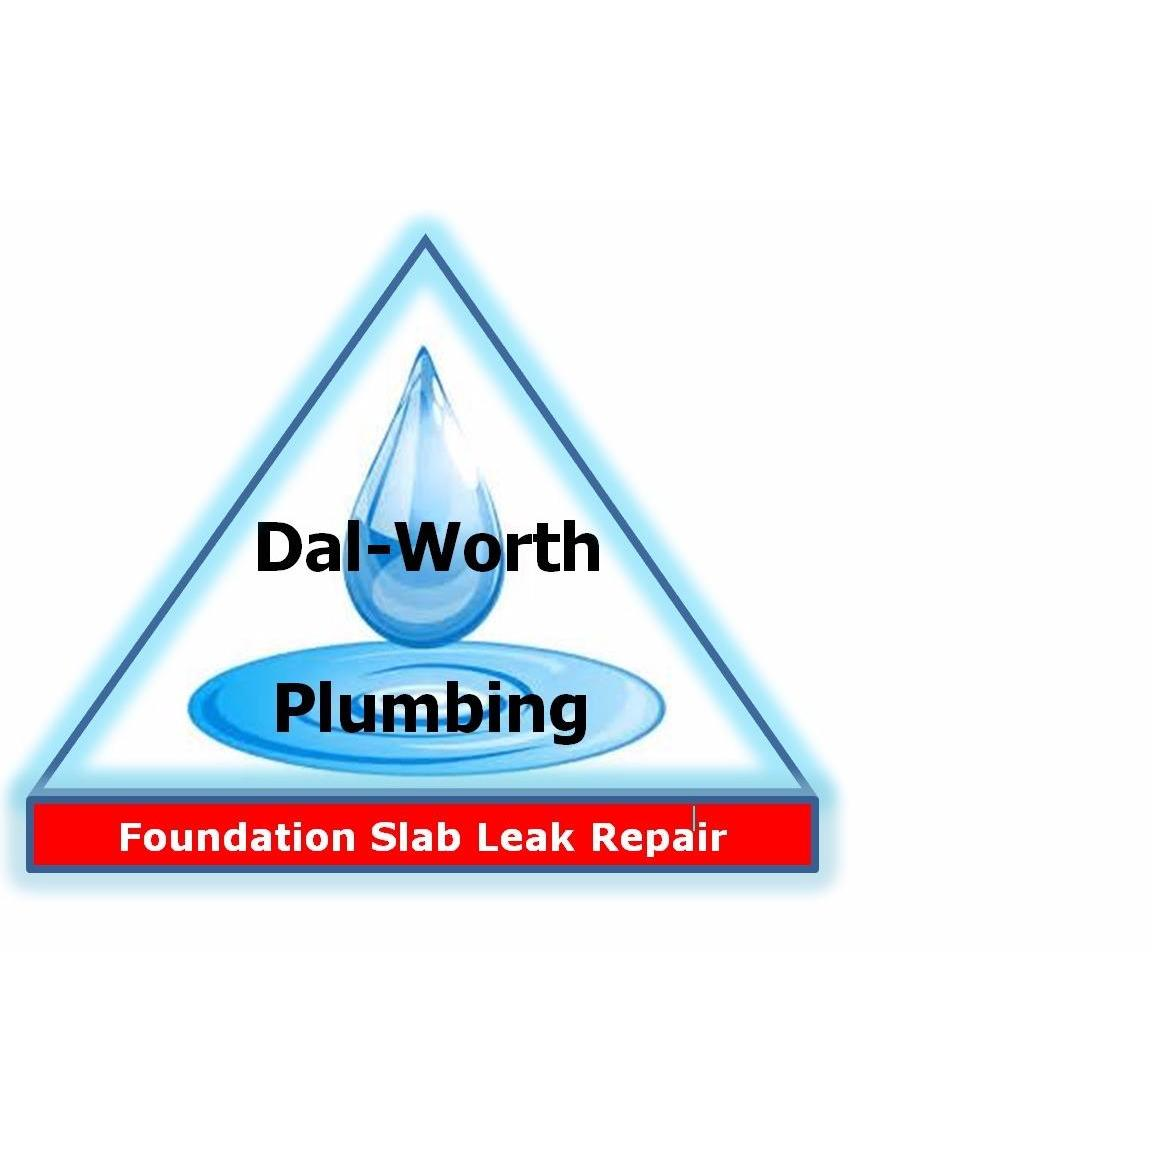 Dal-Worth Slab Leak Repair Service - Hurst, TX 76053 - (817)268-8211 | ShowMeLocal.com